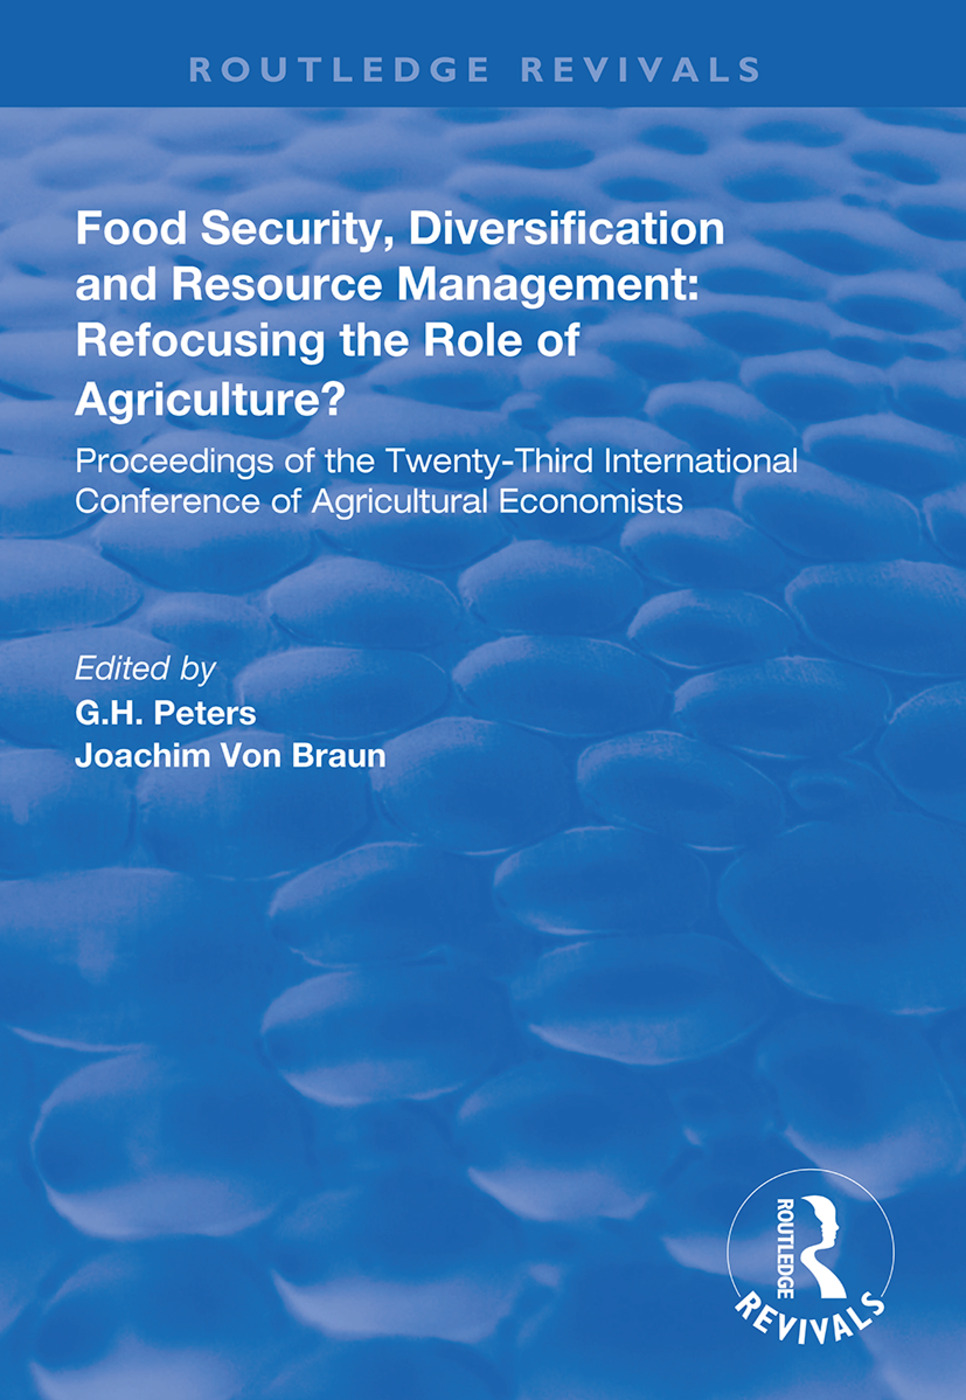 Food Security, Diversification and Resource Management: Refocusing the Role of Agriculture?